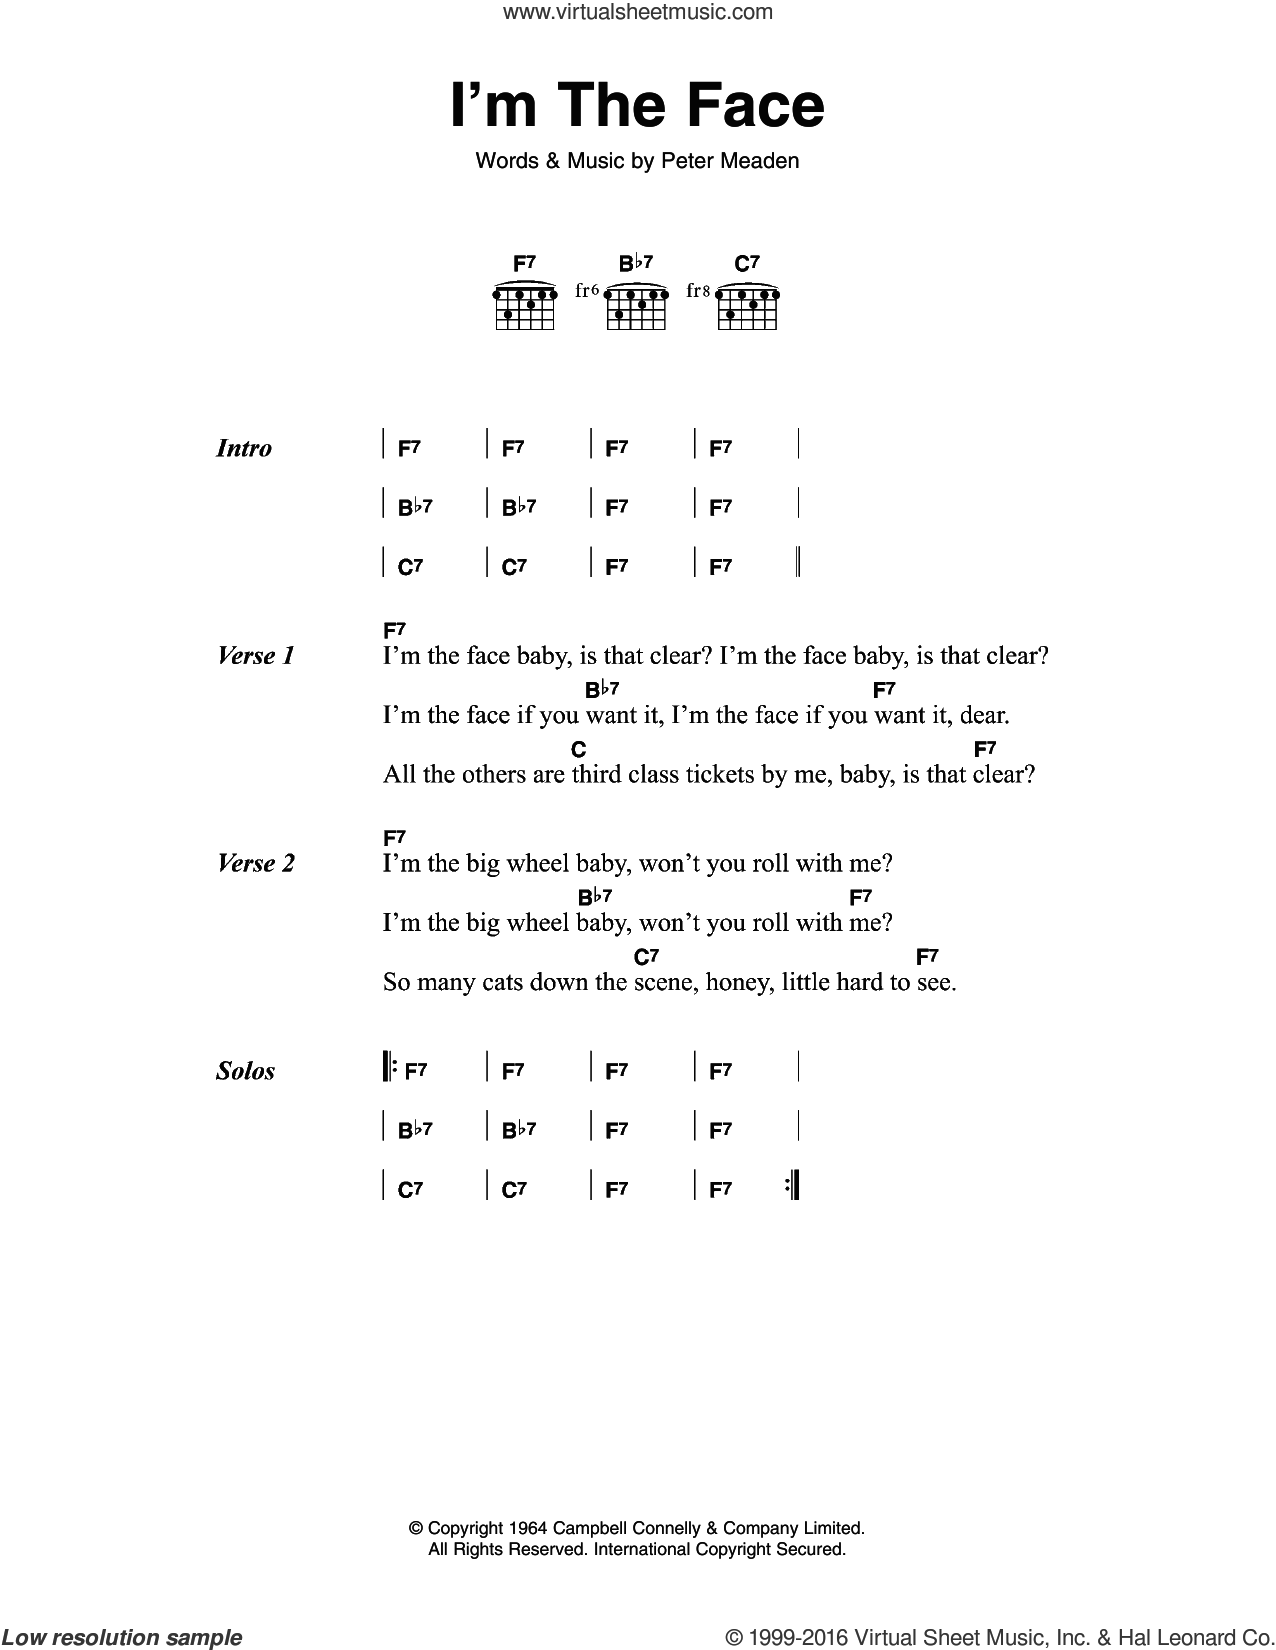 I'm The Face sheet music for guitar (chords) by Peter Meaden